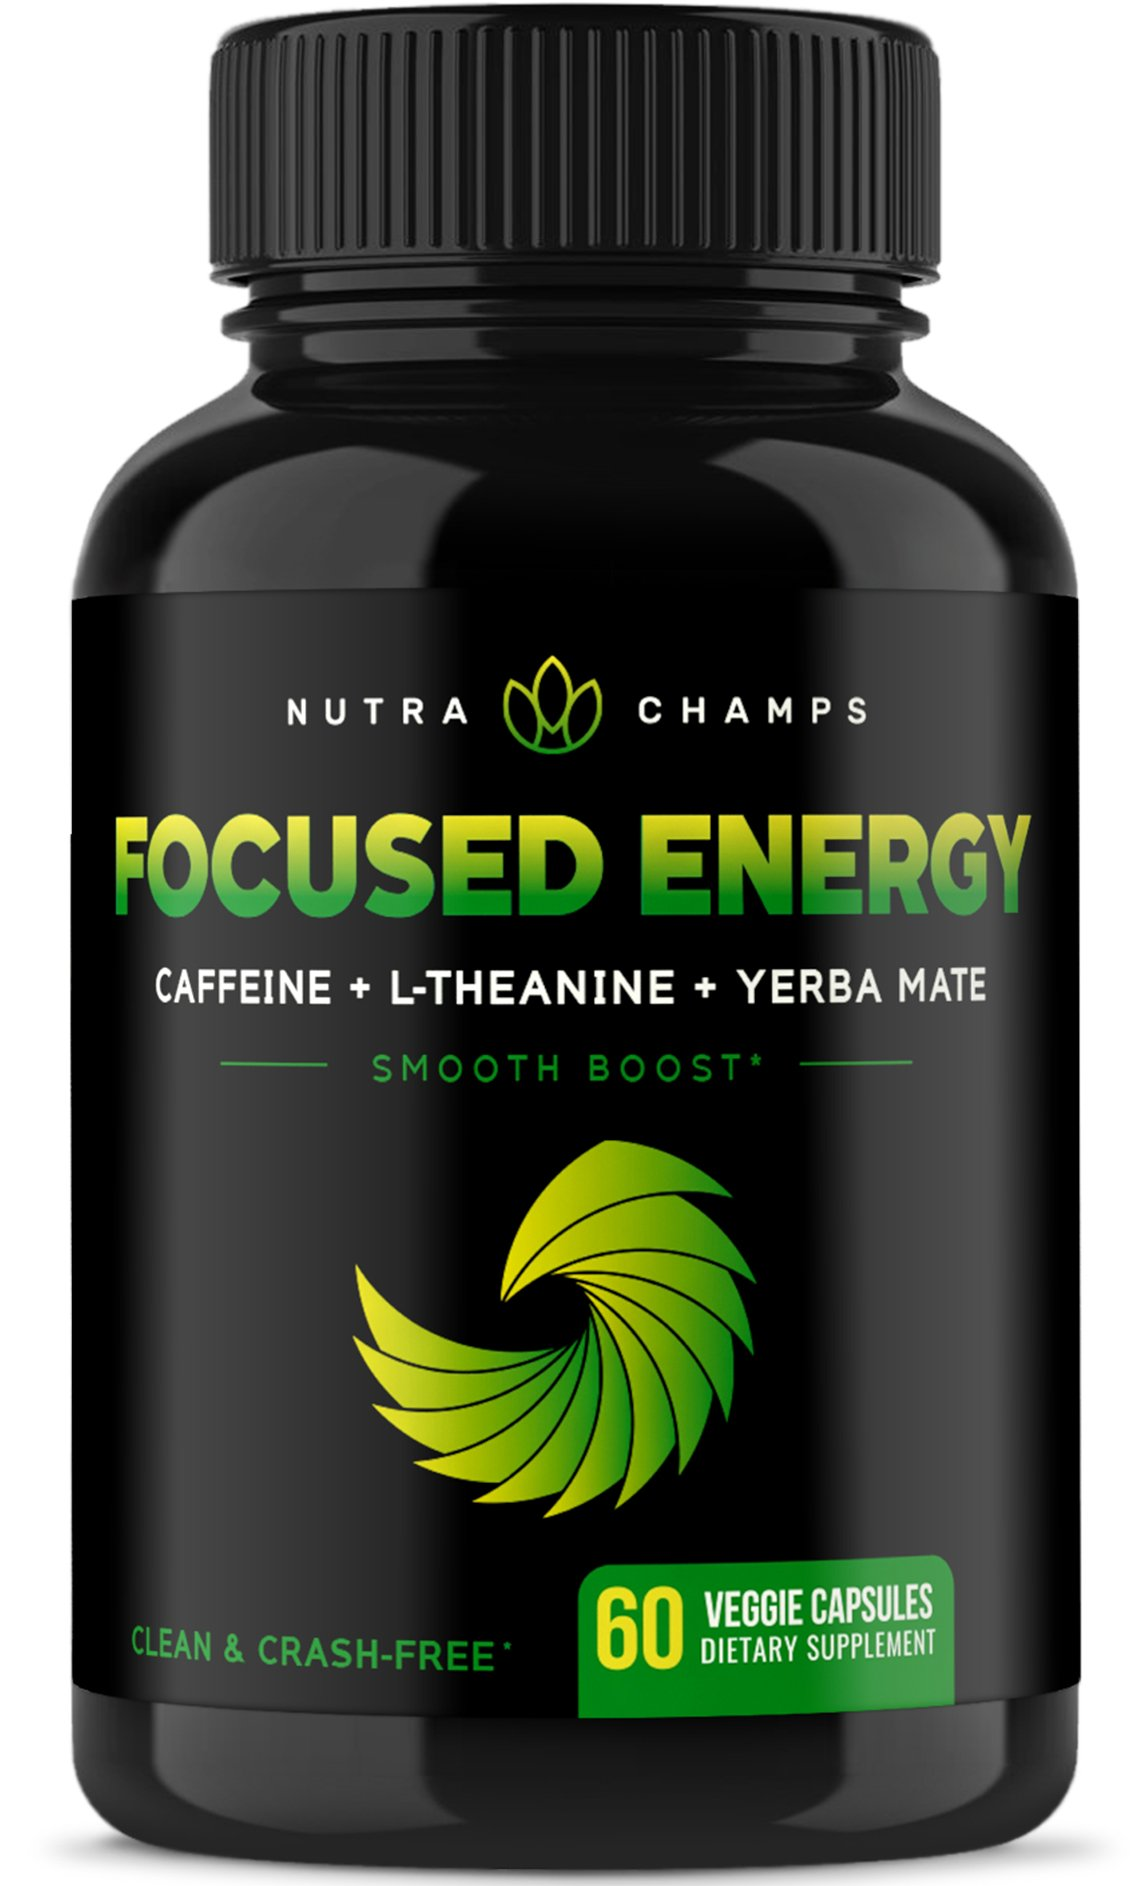 Caffeine with L-Theanine for Energy & Focus - Smooth & Clean Focused Energy - Premium Cognitive Stack with Yerba Mate for Performance - No Crash, No Jitters - Vegan Capsules